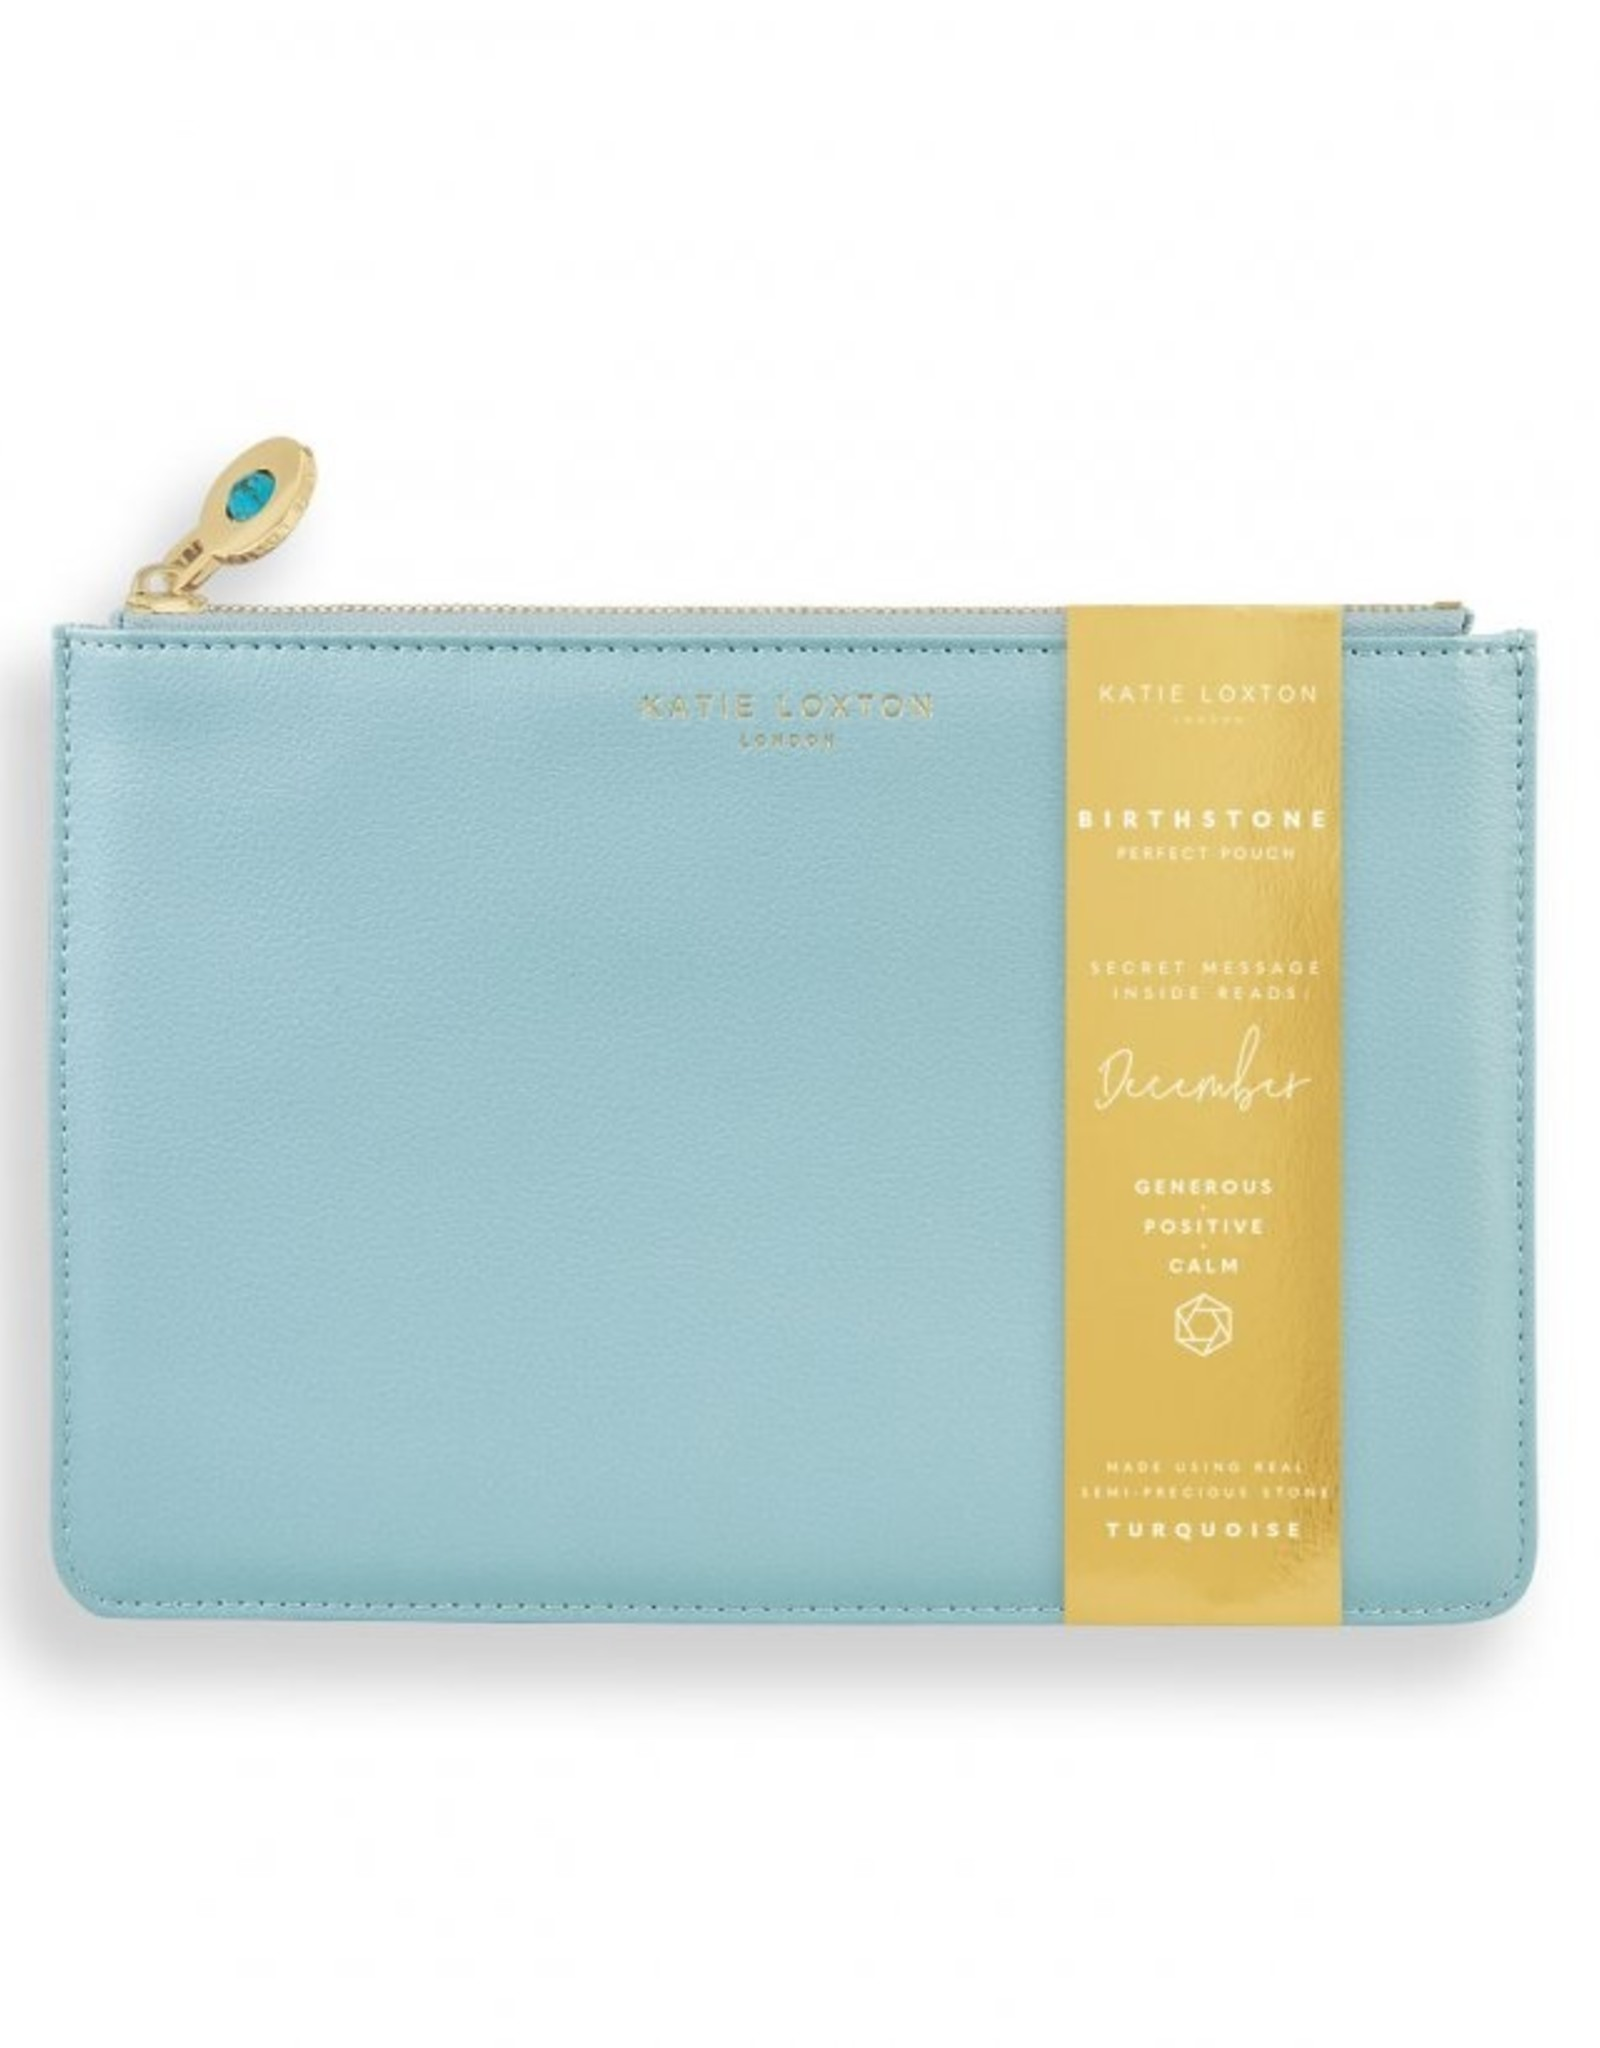 Katie Loxton The Birthstone Perfect Pouch December